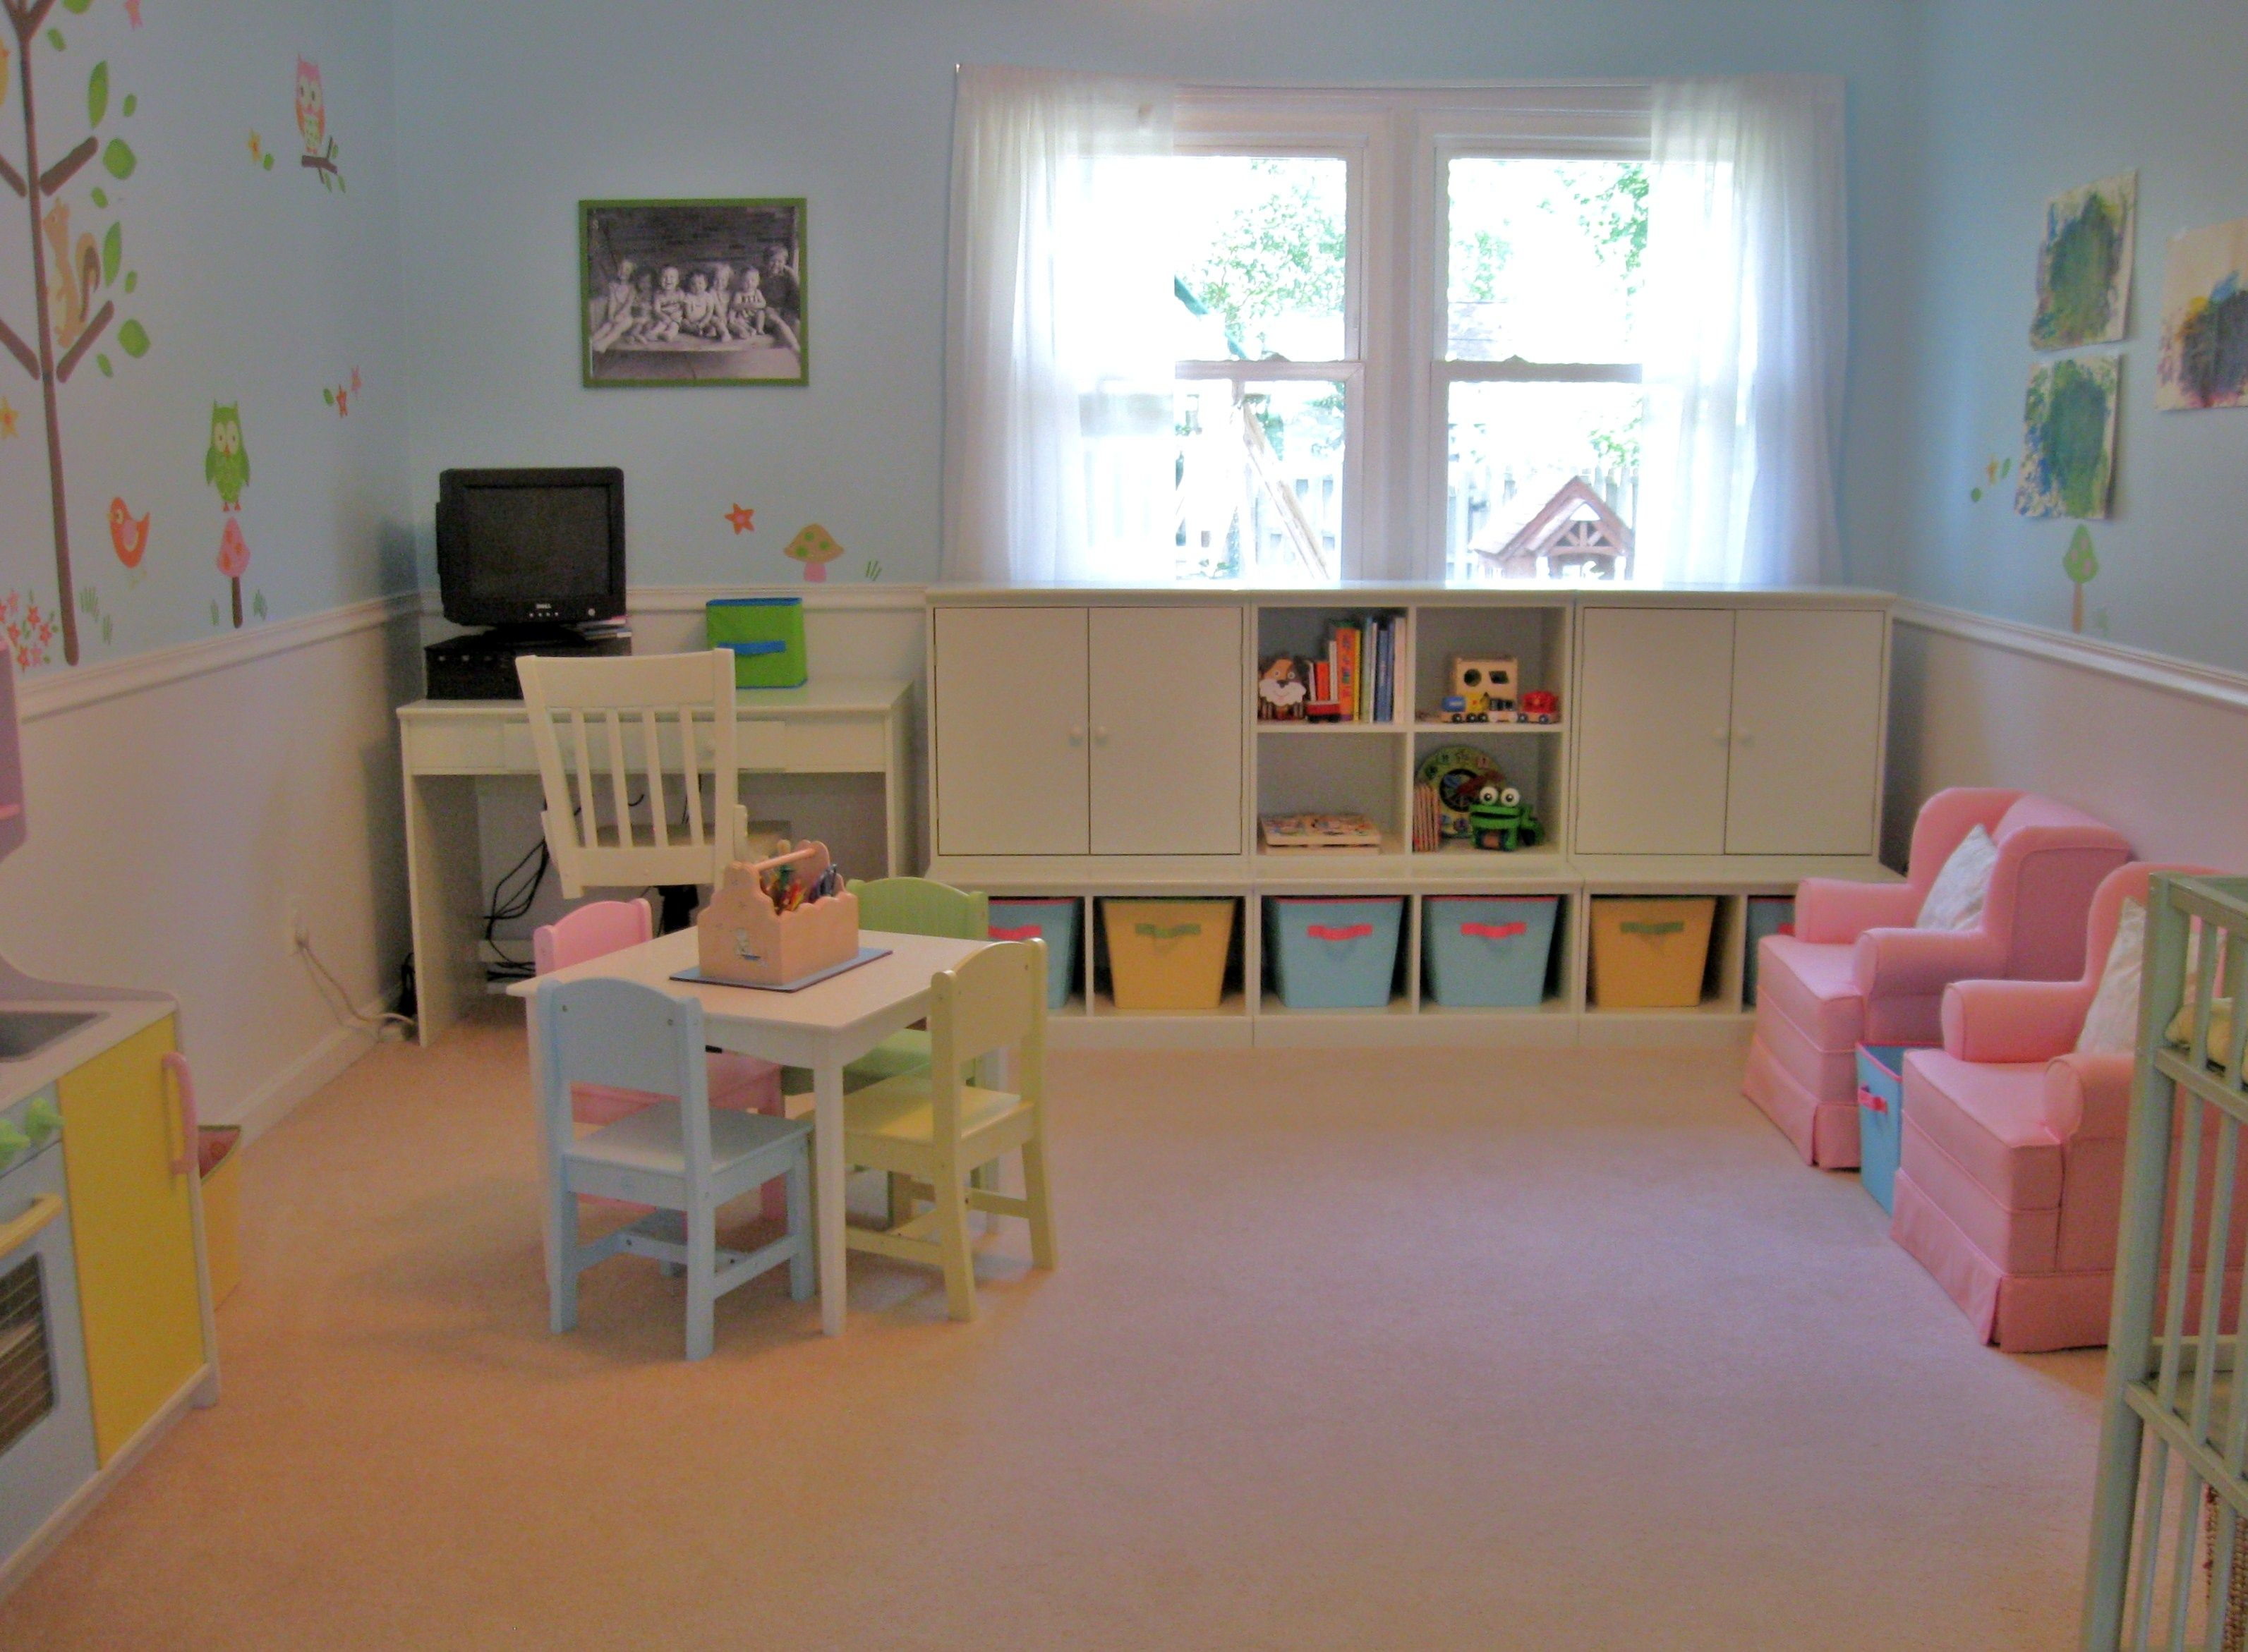 small play room ideals | Project Home Organization: A Playroom ...